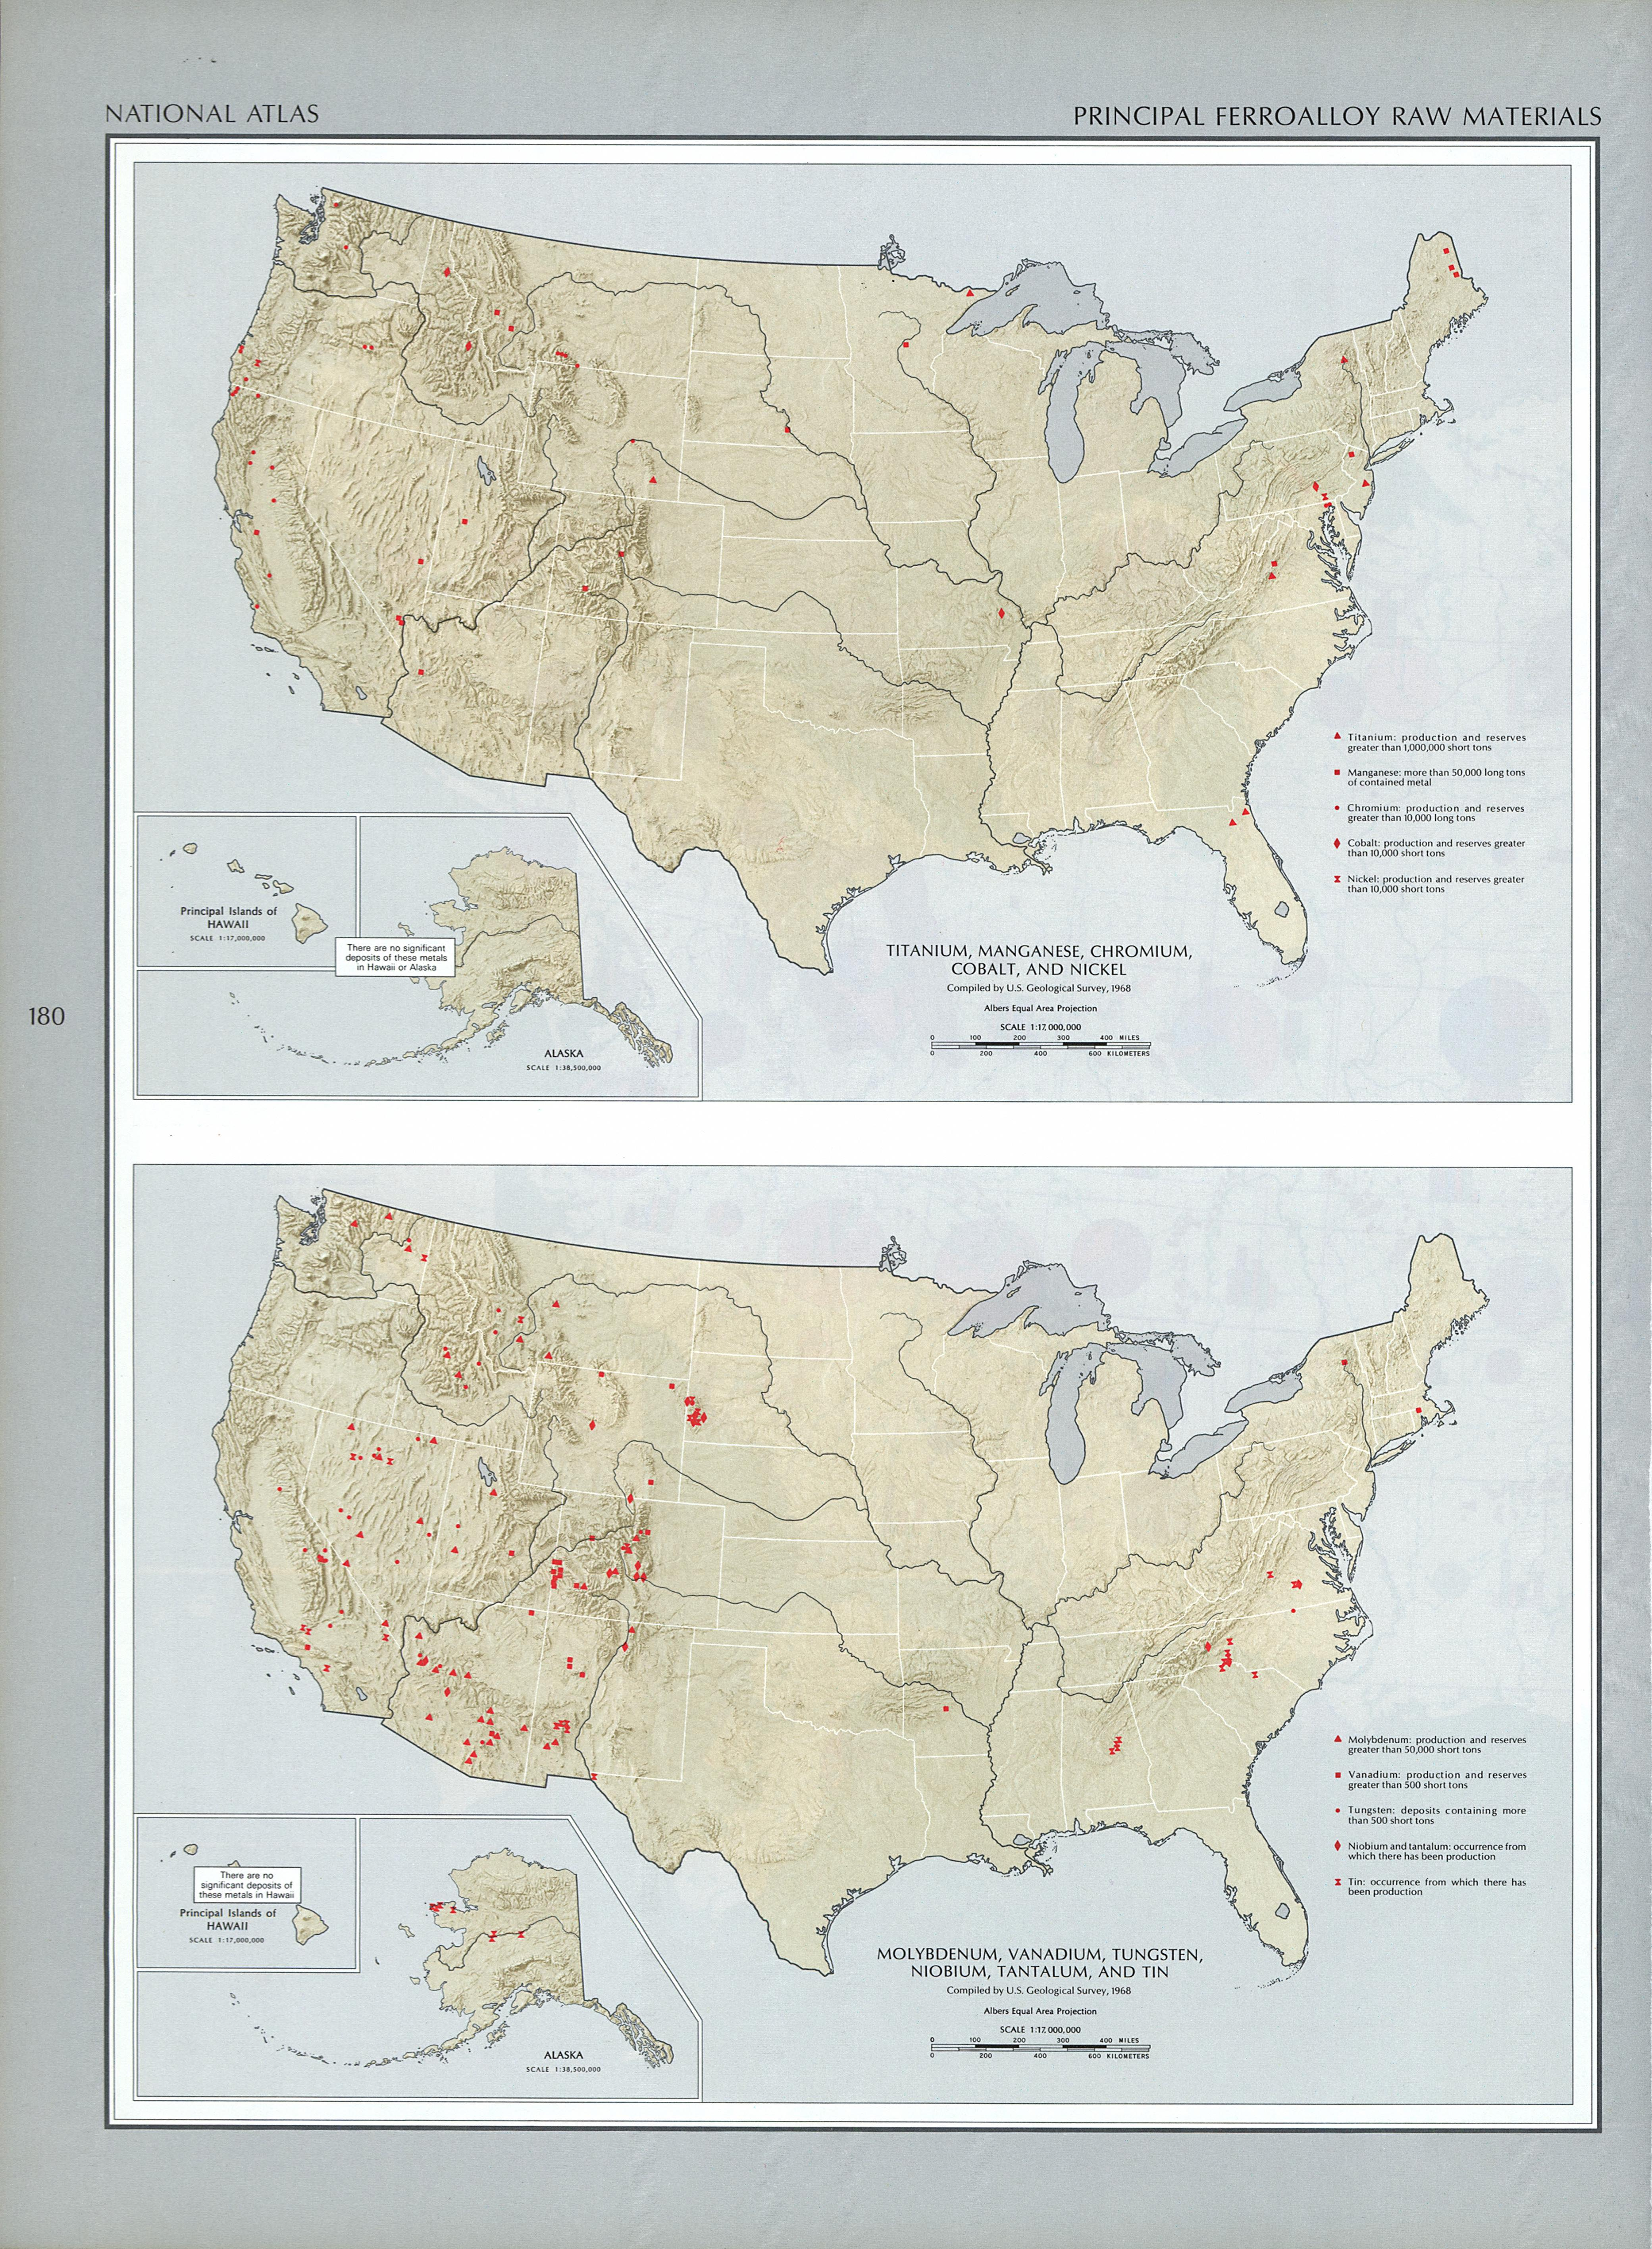 United States Principal Ferroalloy Raw Materials Map